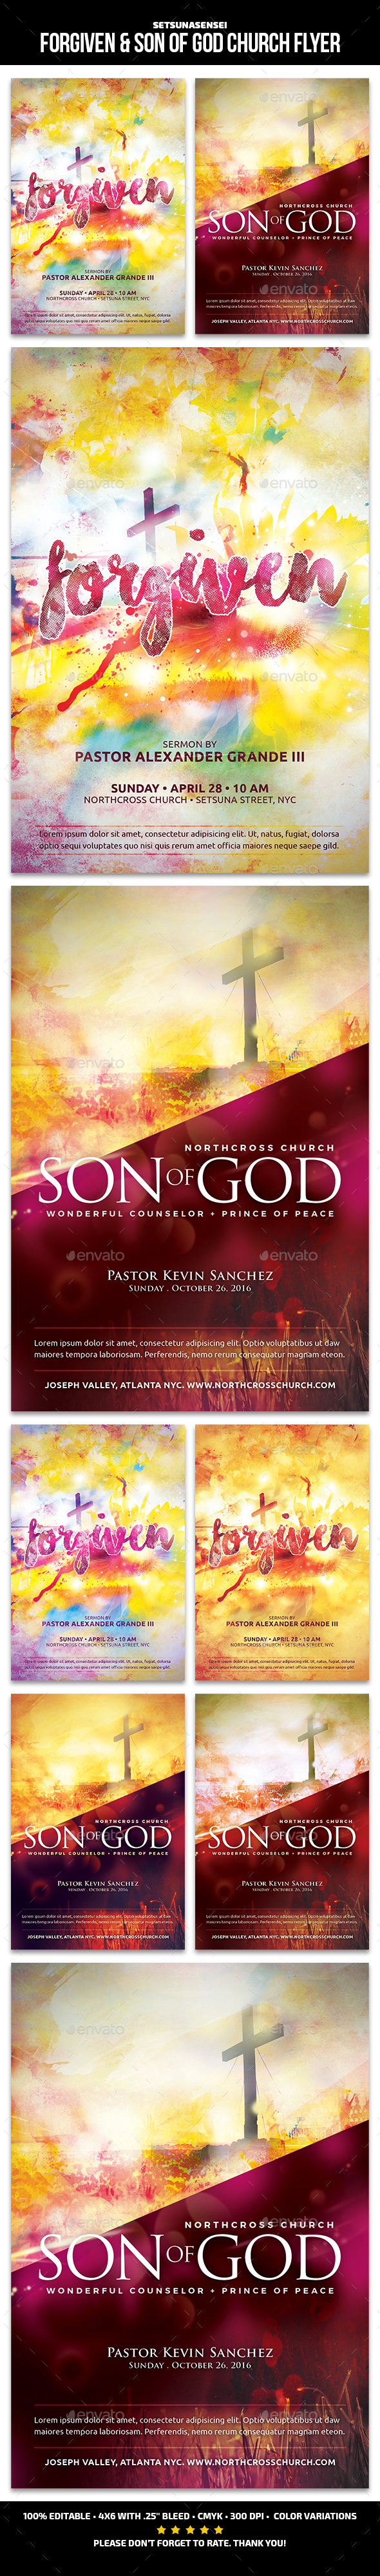 Forgiven & Son of God Church Flyer - Church Flyers